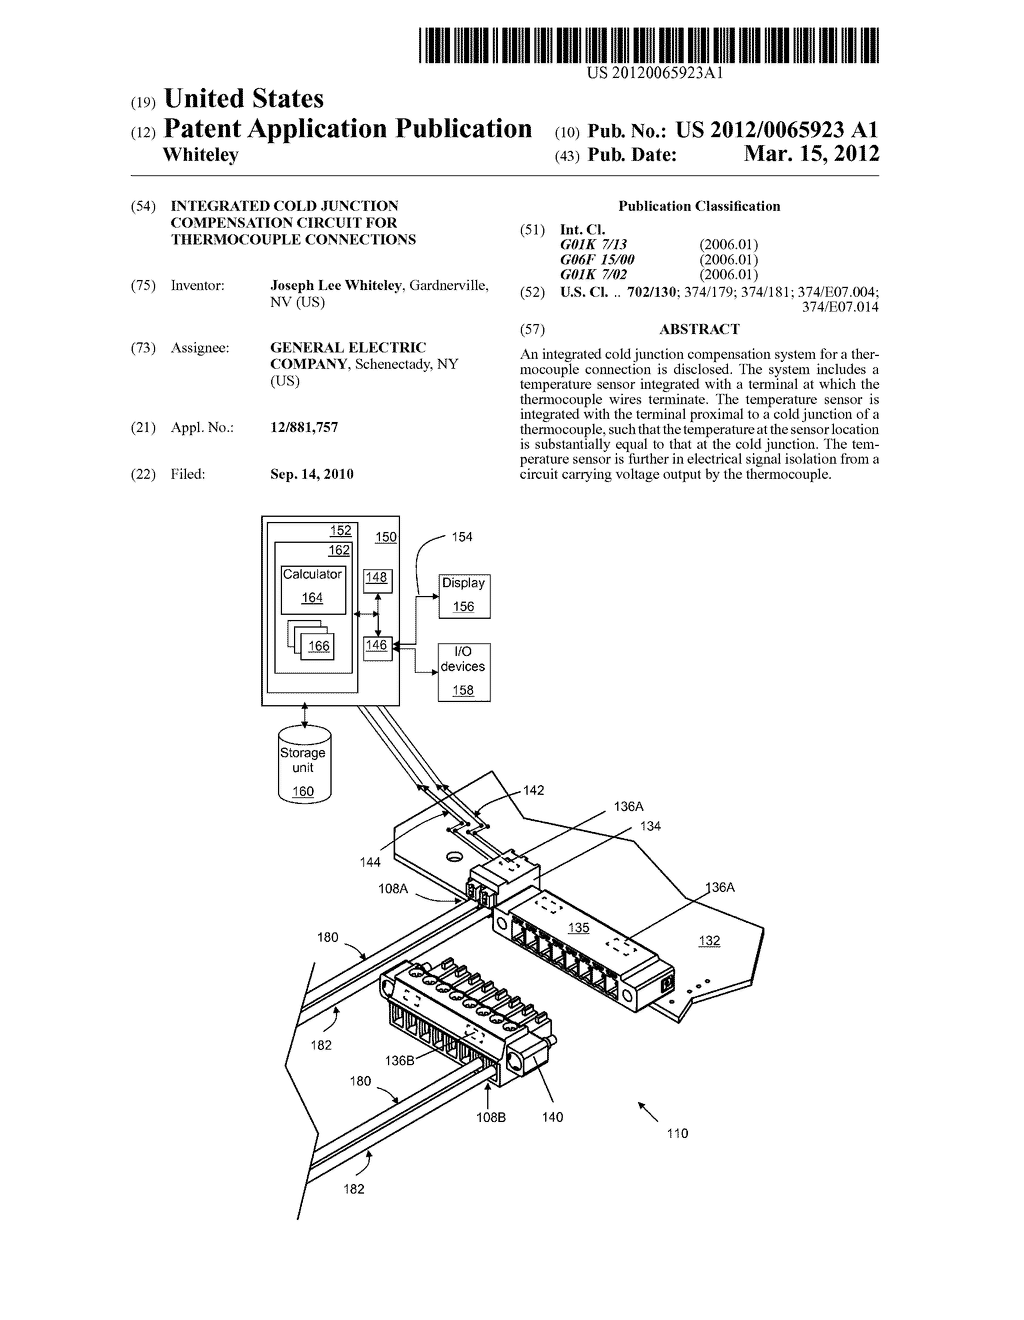 Integrated Cold Junction Compensation Circuit For Thermocouple Connections Diagram Schematic And Image 01